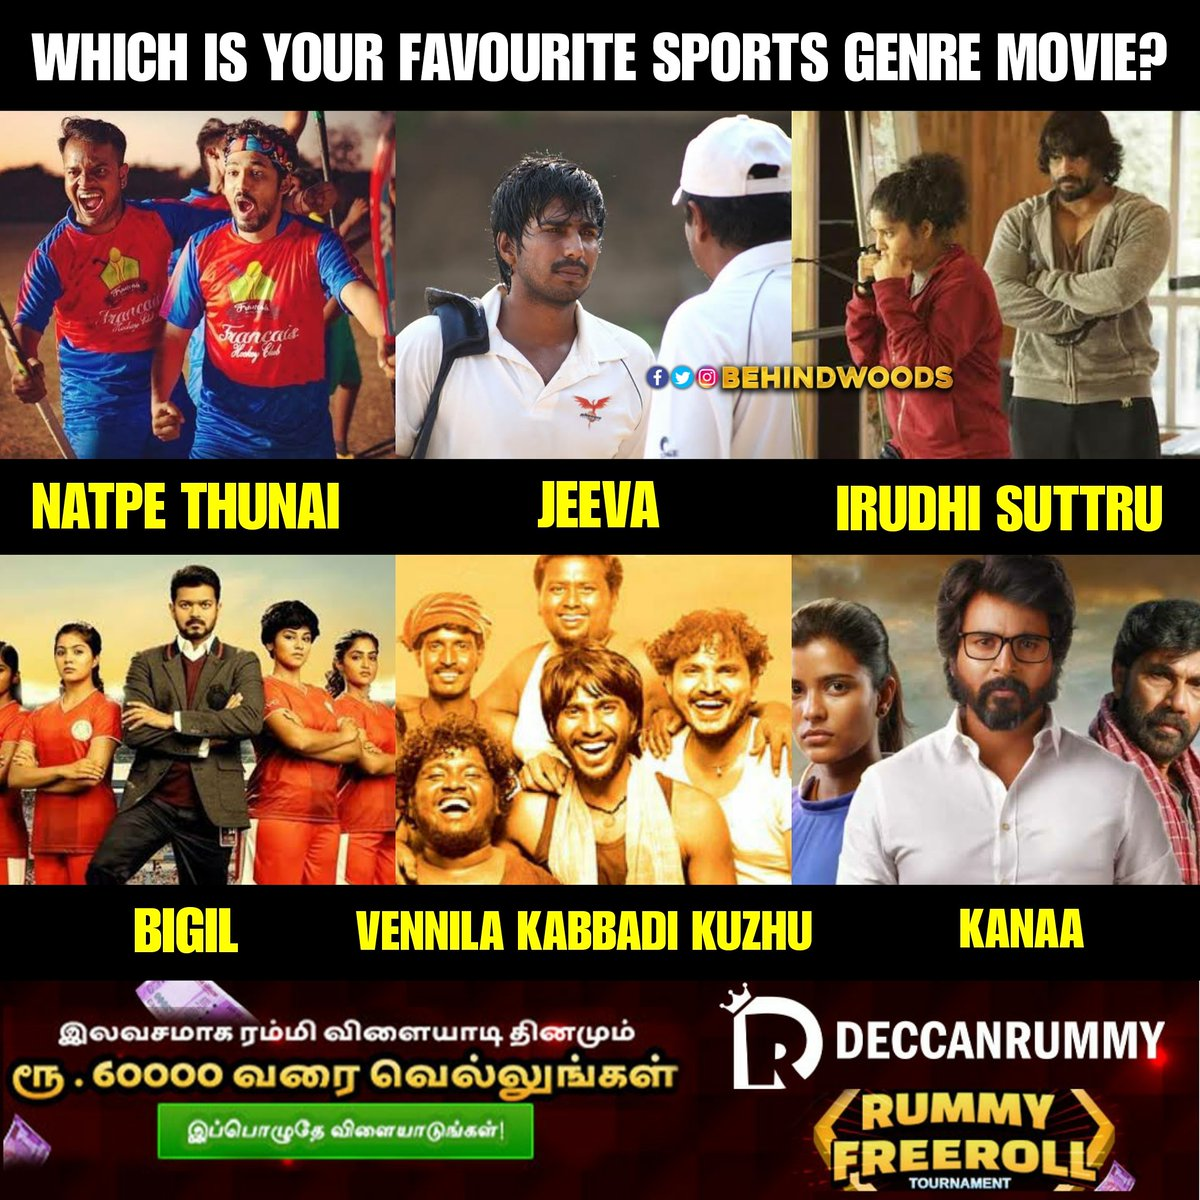 Ungaloda favourite padam edhu?   #QuarantineTimepass #Sports #Kollywood #Movies https://t.co/T9JbbDbHfF